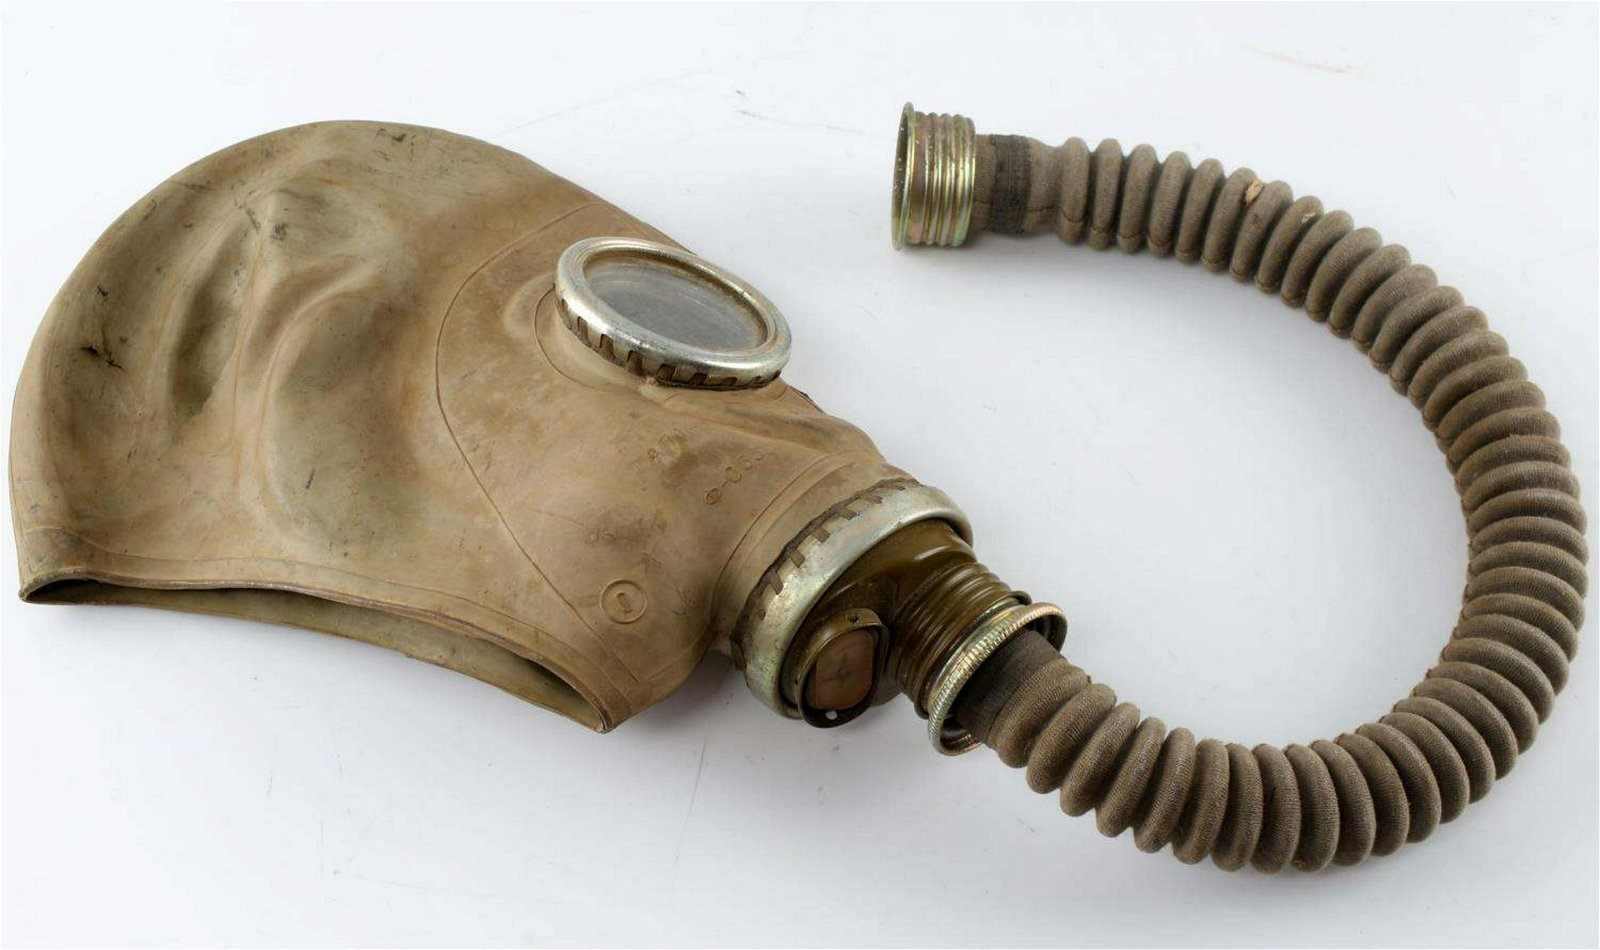 WWII ERA SOVIET RUSSIAN SURPLUS GAS MASK WITH HOSE